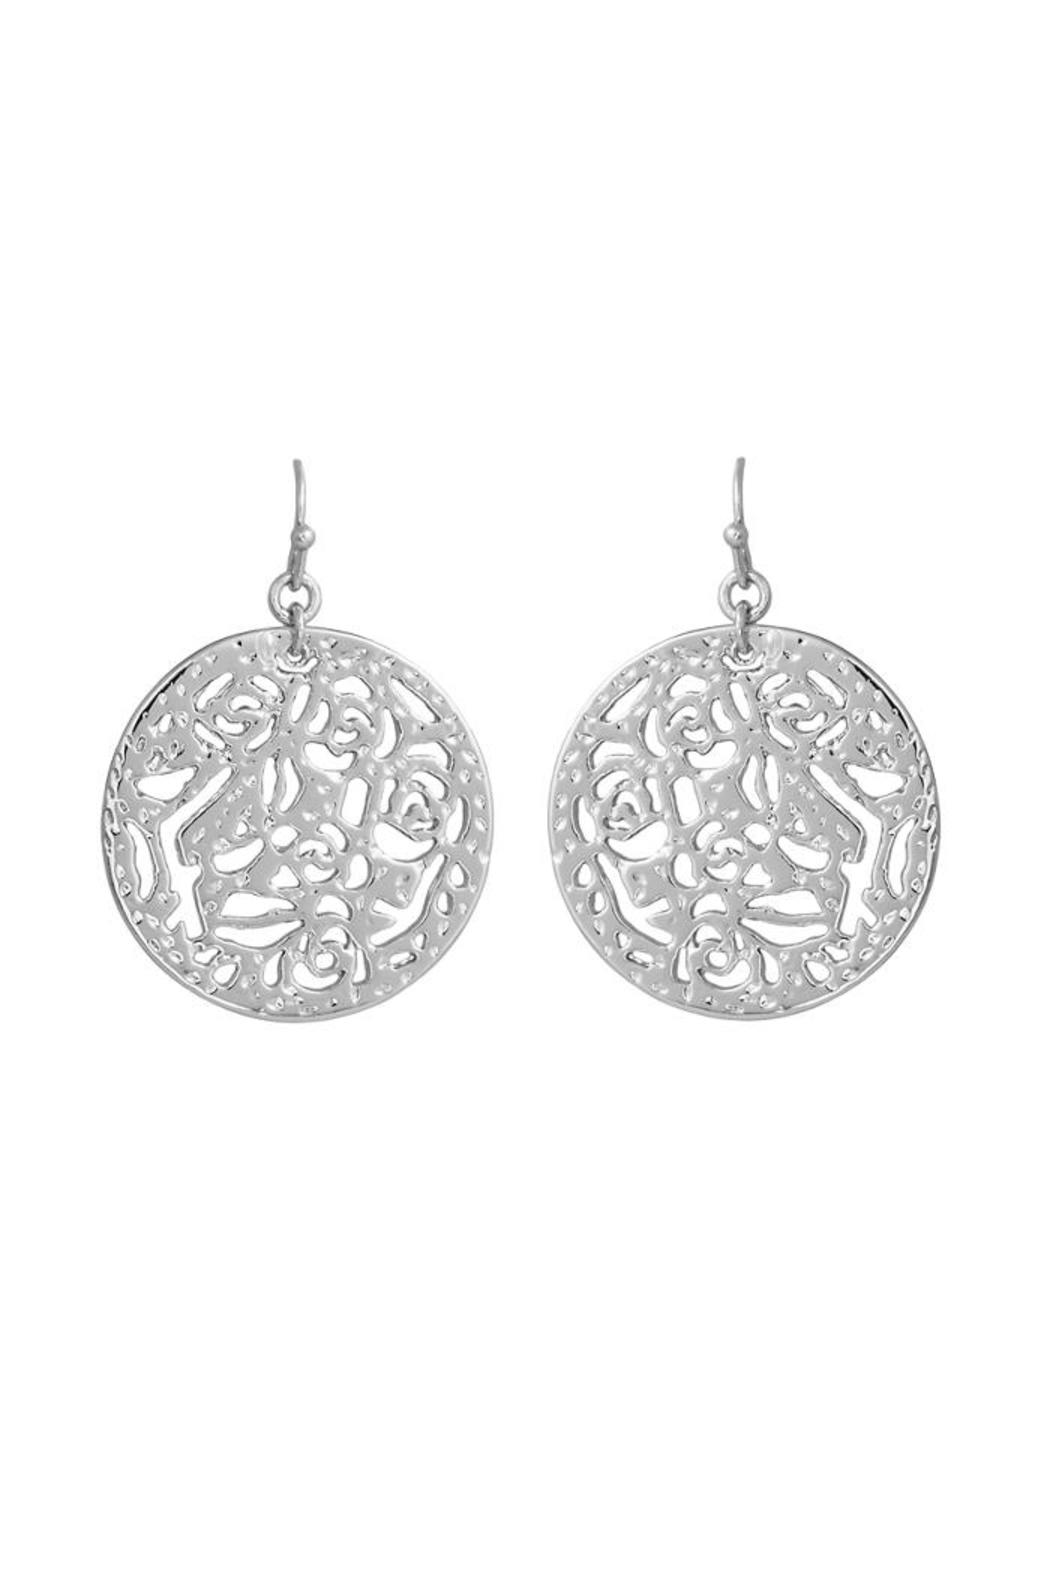 Kendra Scott Madina Round Earrings From Lafayette By Brothers On